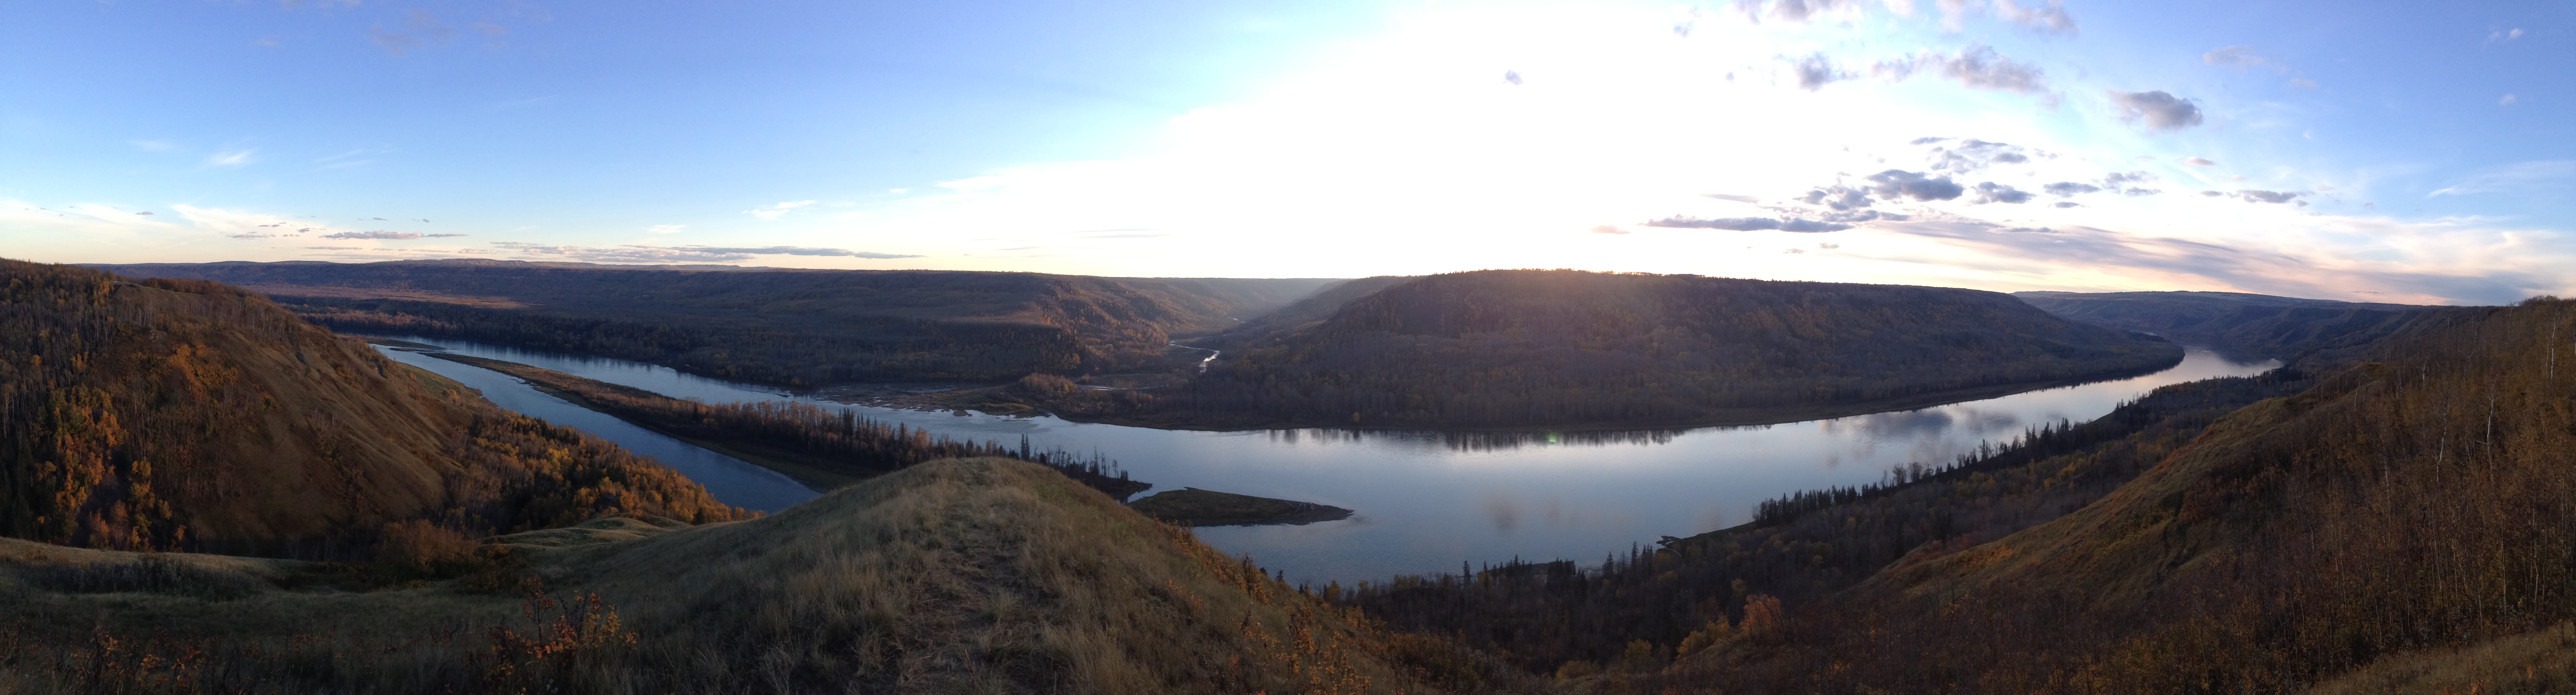 Wind power or site c dam what makes cents bc green party